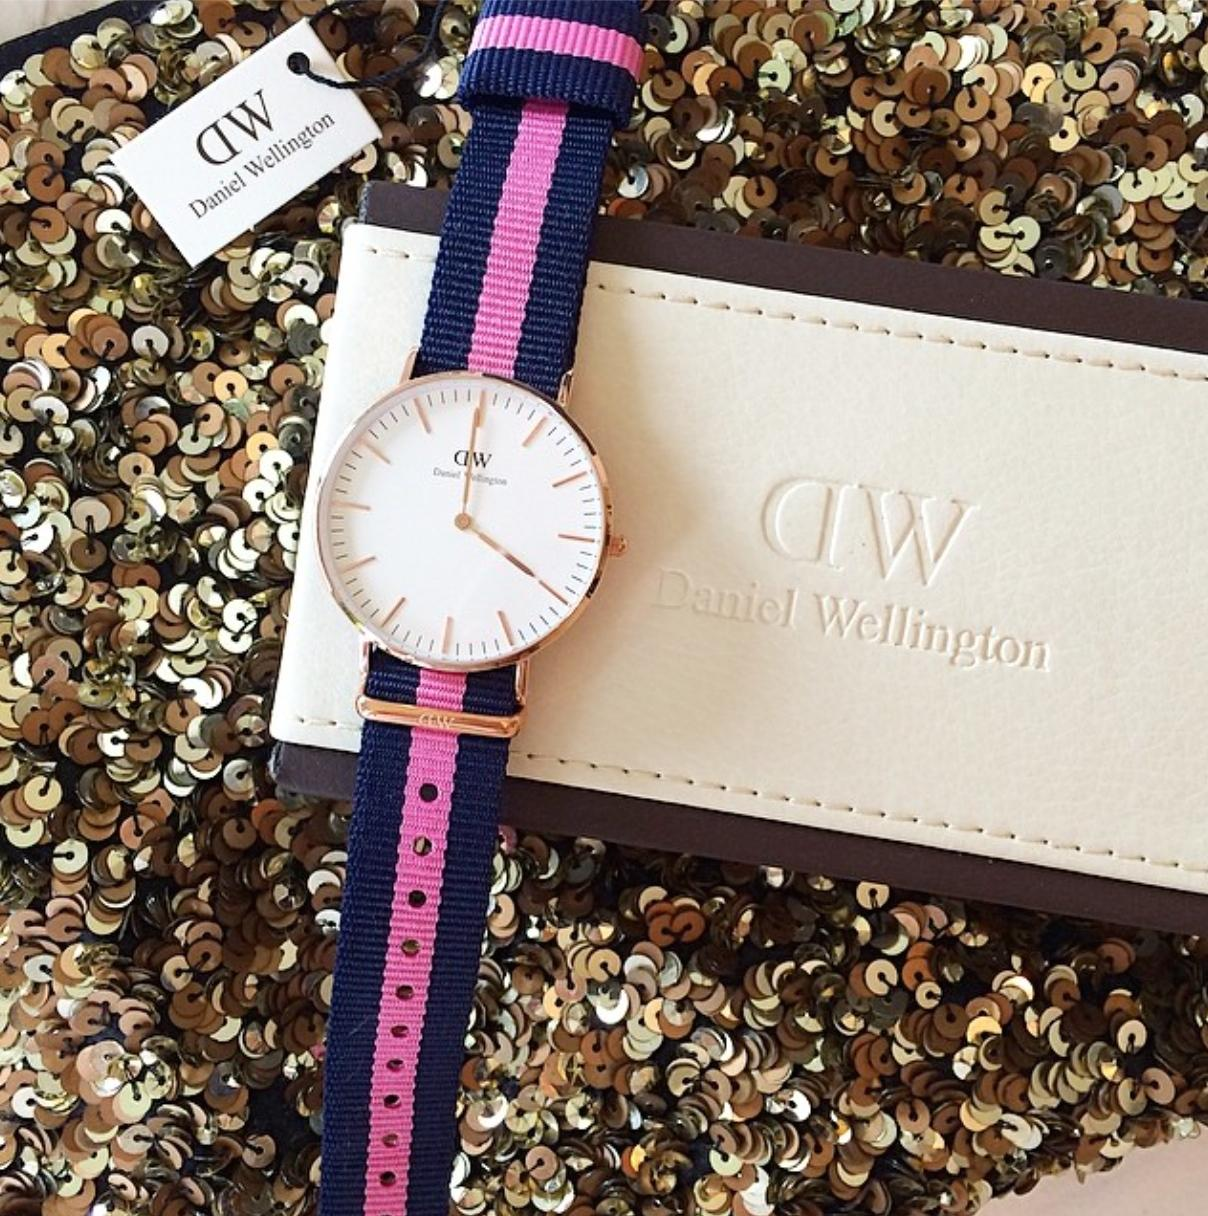 Up to 60% Off Select Daniel Wellington Watches @ Amazon.com